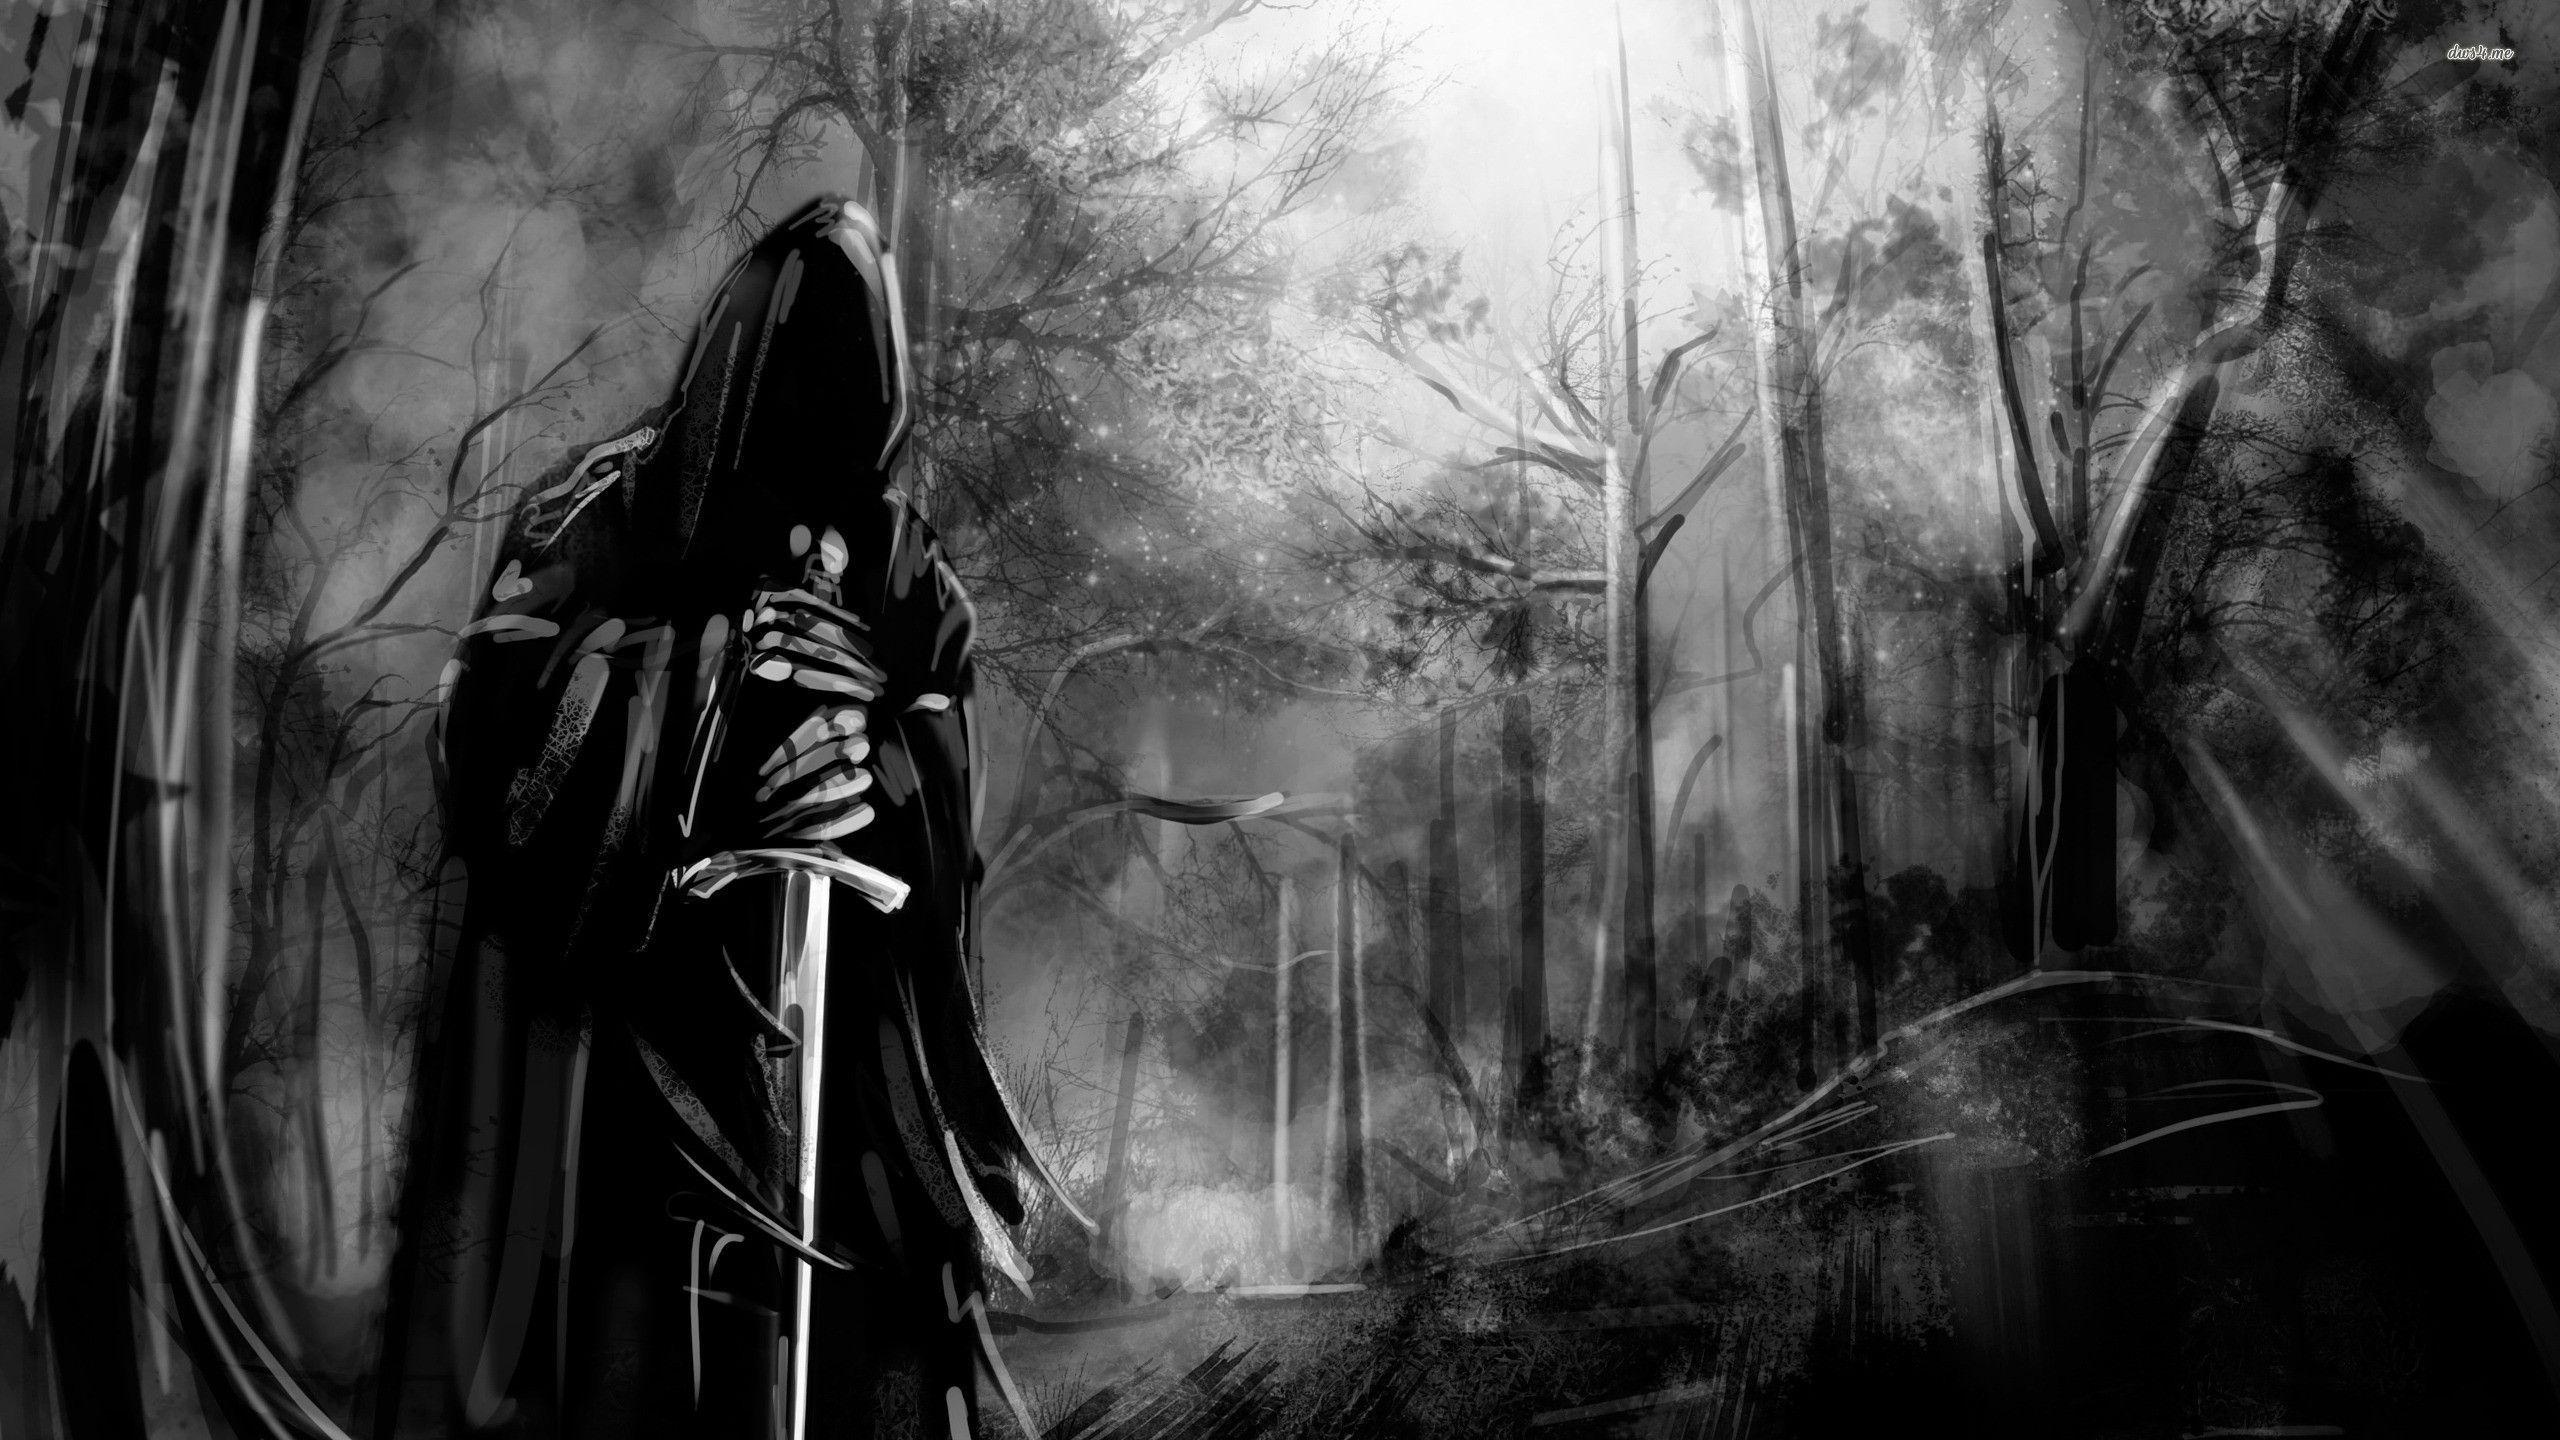 Death wallpaper large hd wallpaper database